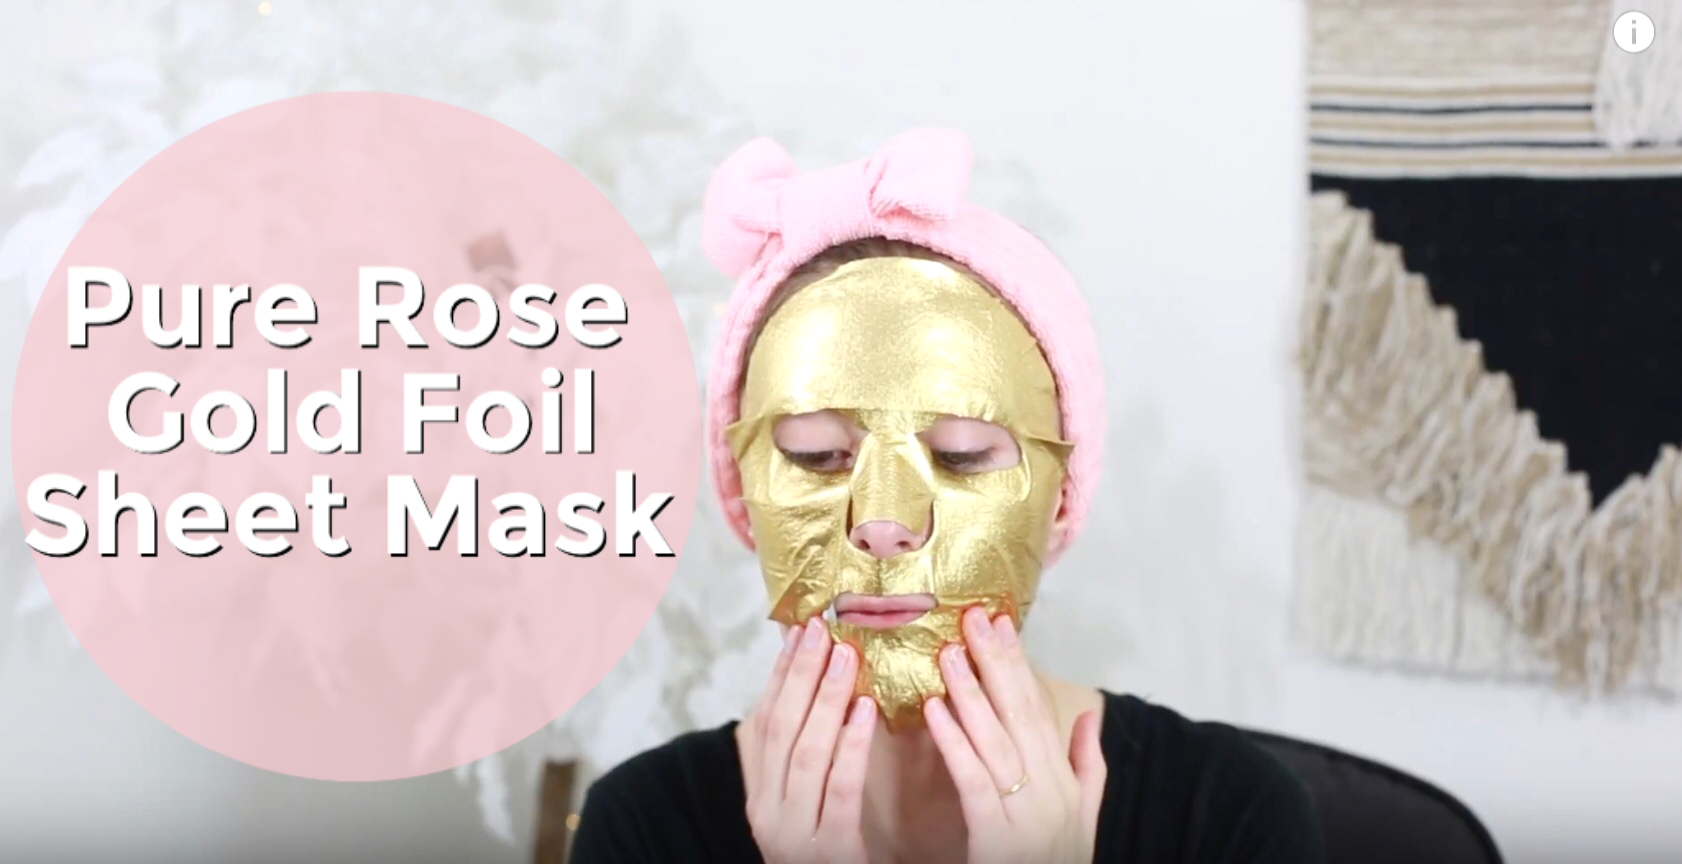 The Rose Gold Foil Sheet Mask by Masque Bar. Review by North Carolina fashion and lifestyle blogger and youtuber Jessica Linn.